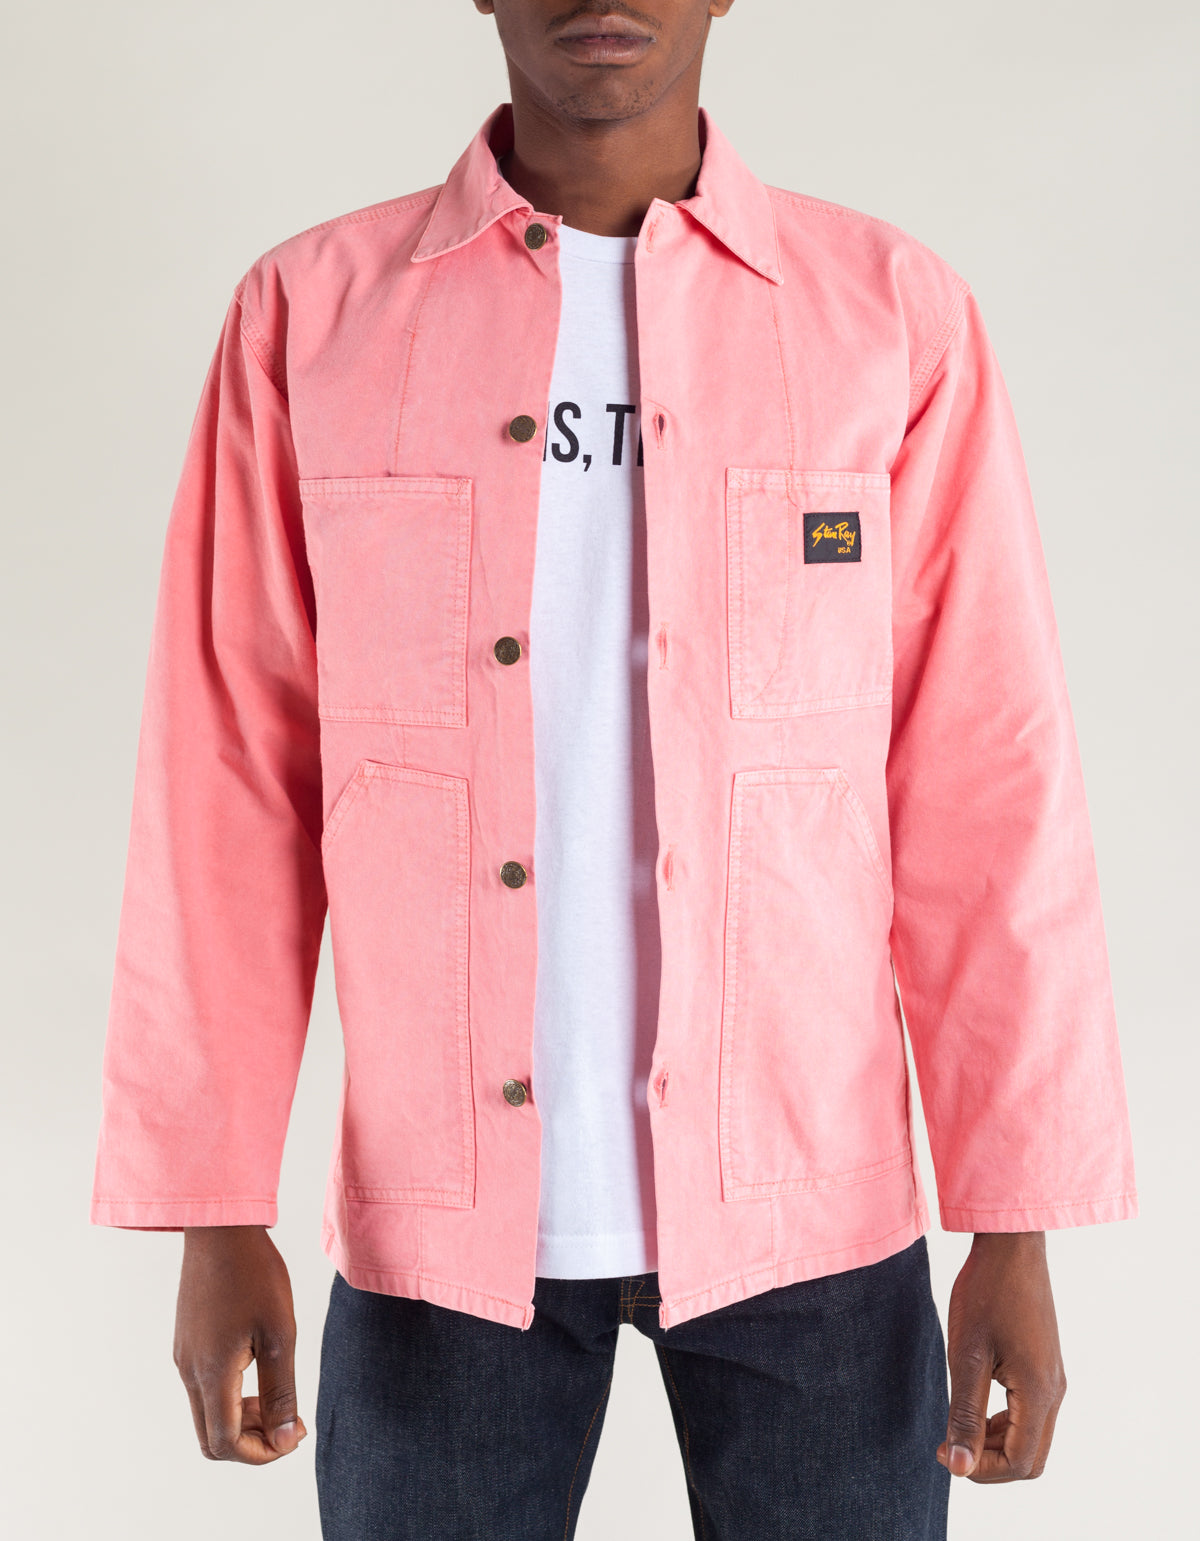 Stan Ray Shop Jacket Peche